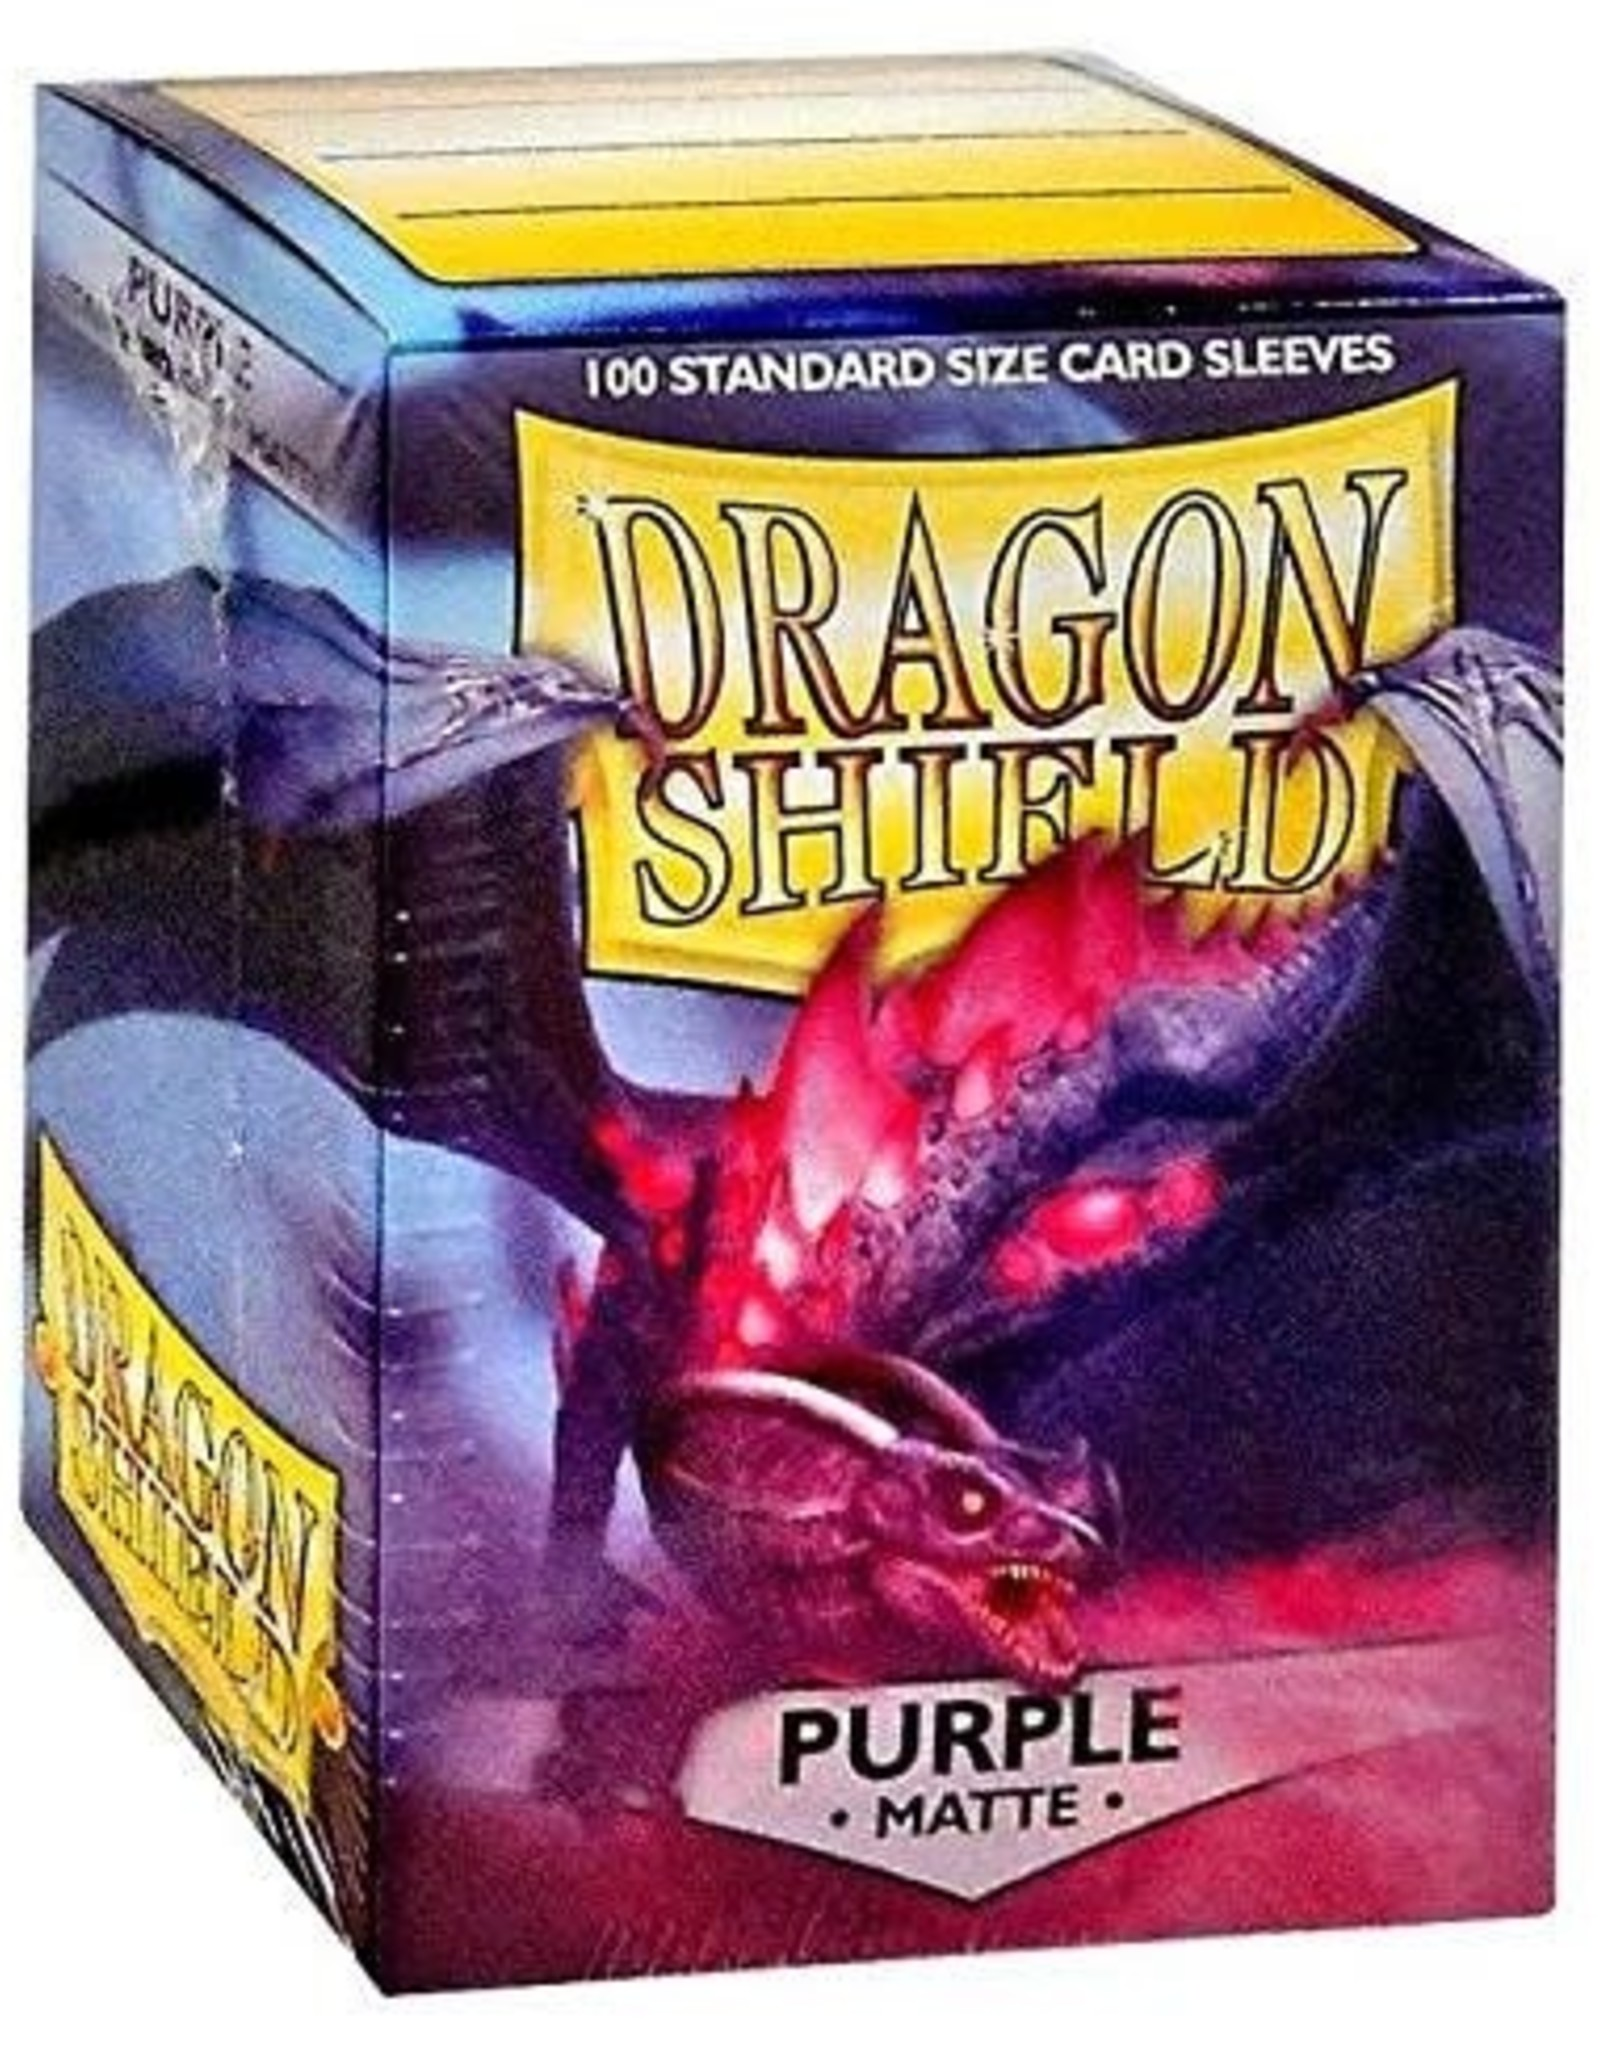 Dragon Shields (100) Matte - Purple